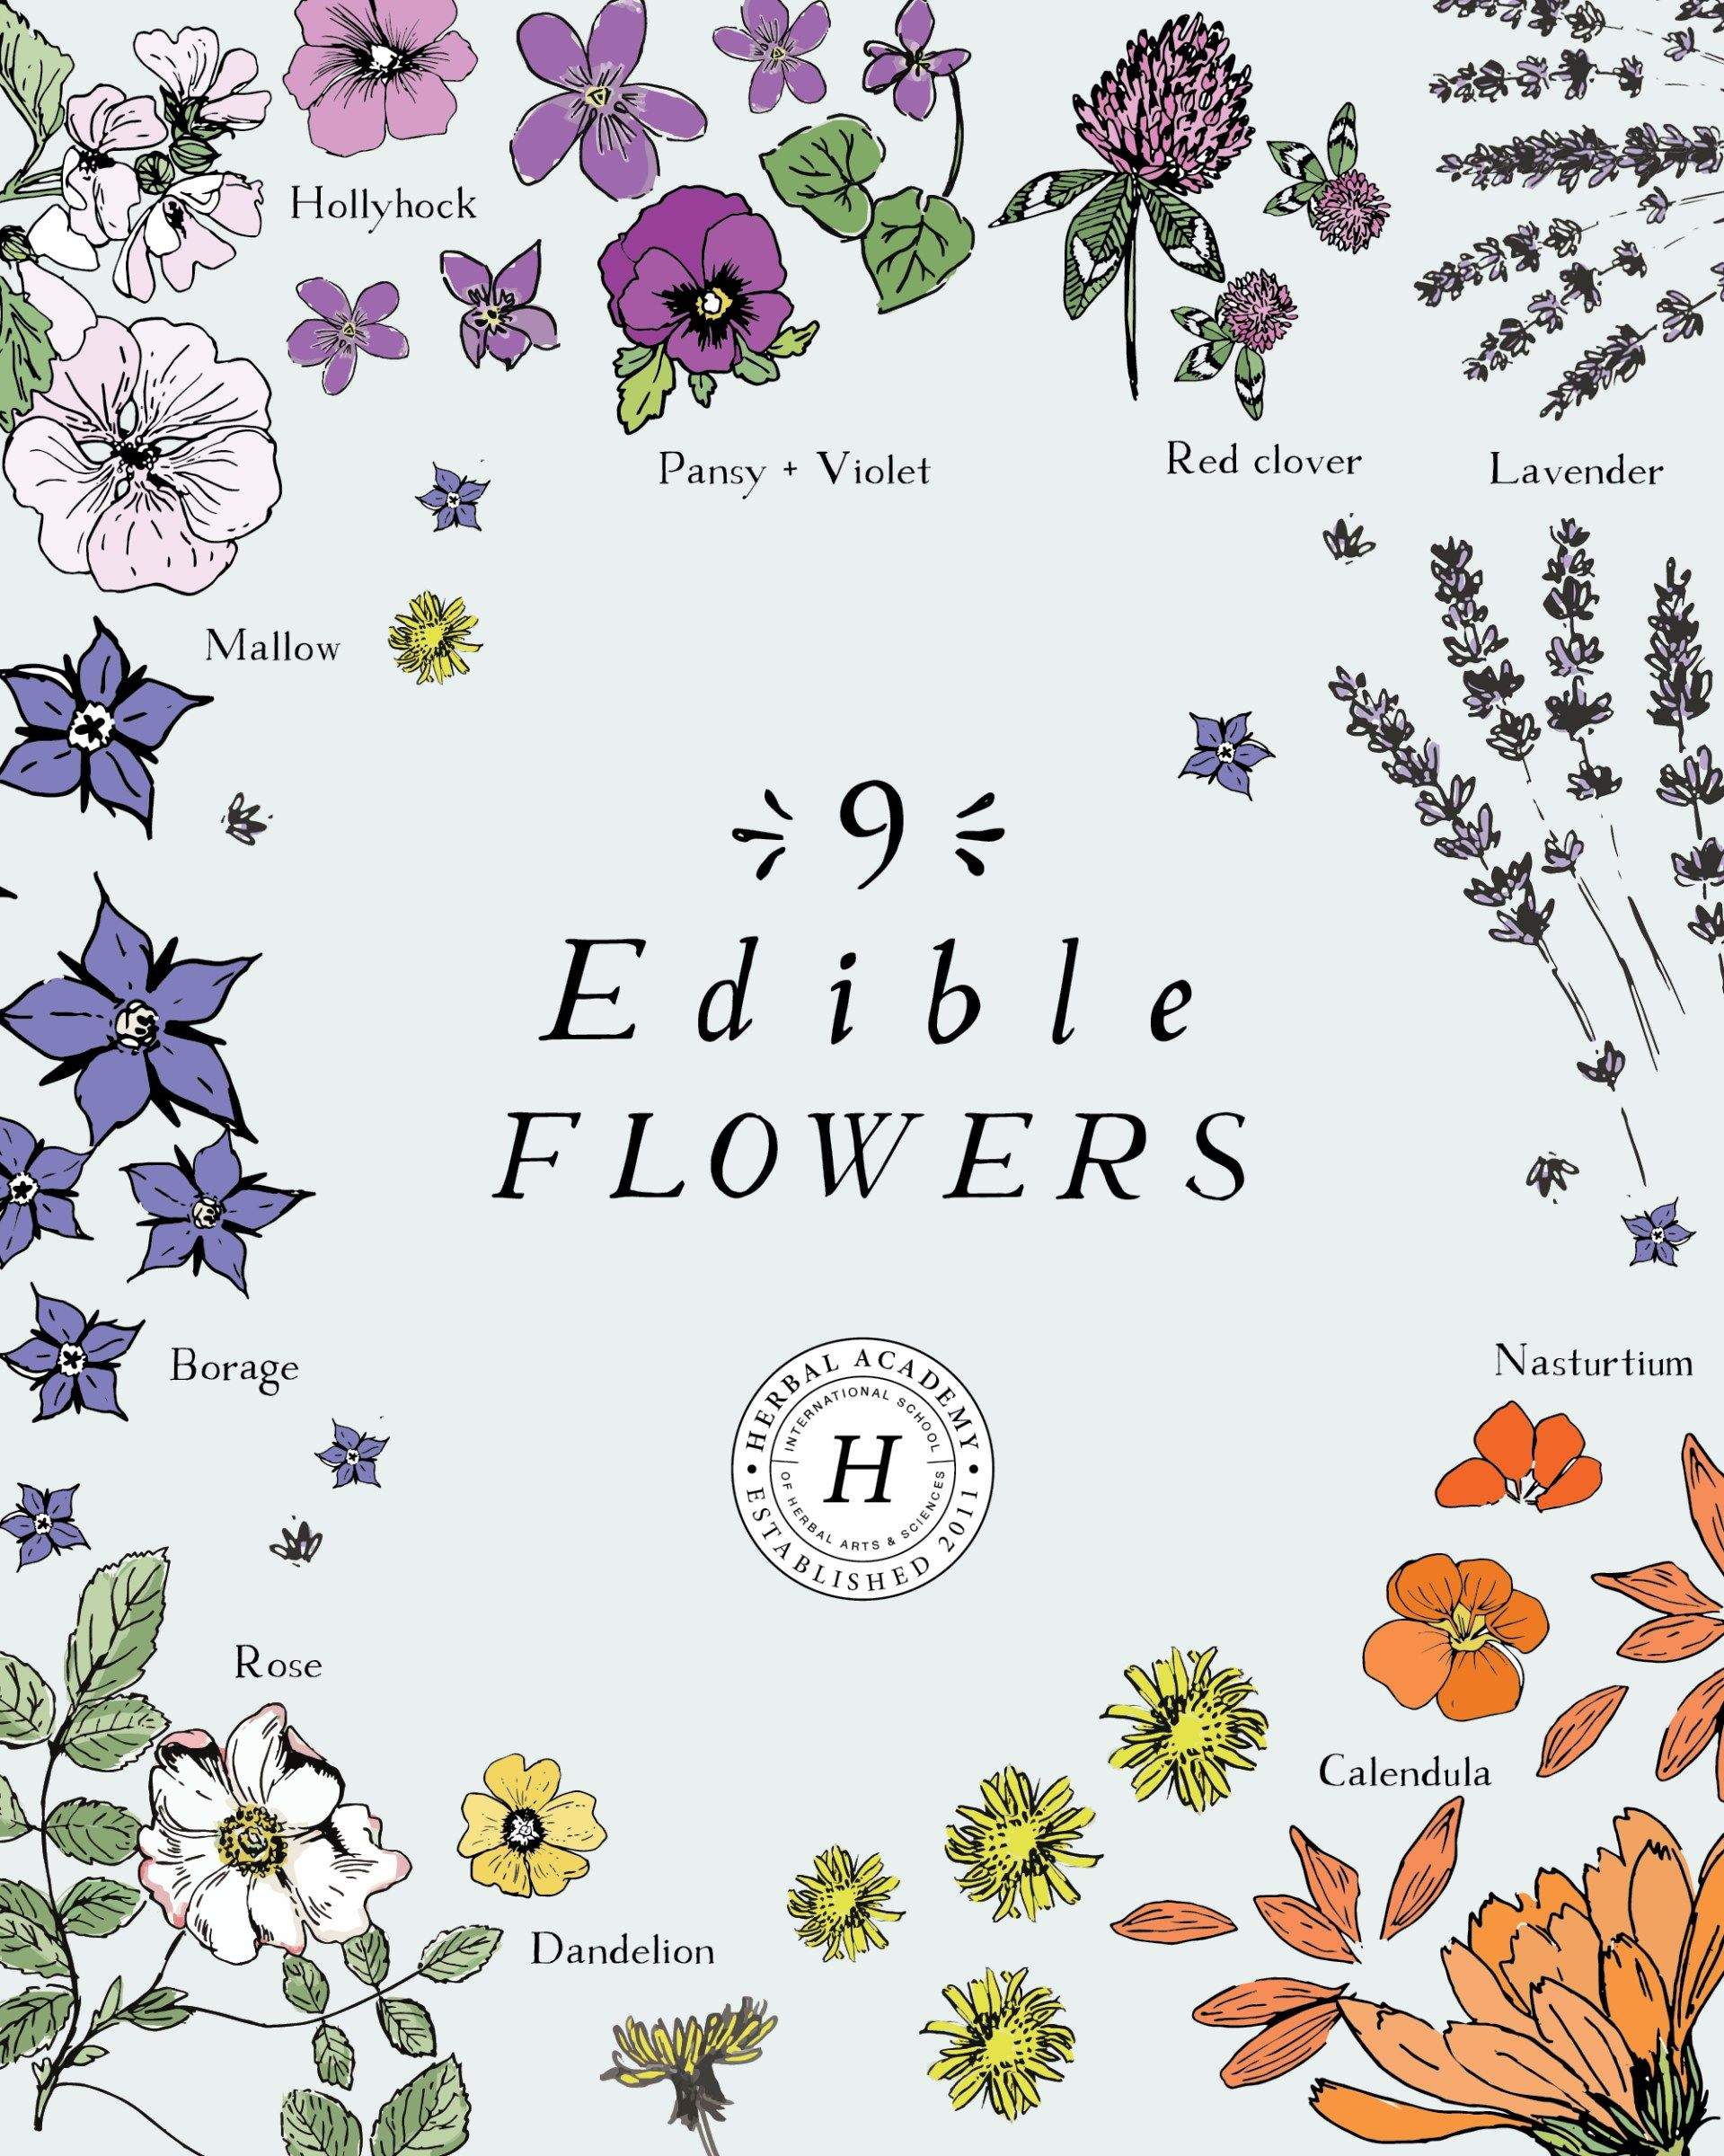 9 Edible Flowers And How To Use Them – Herbal Academy